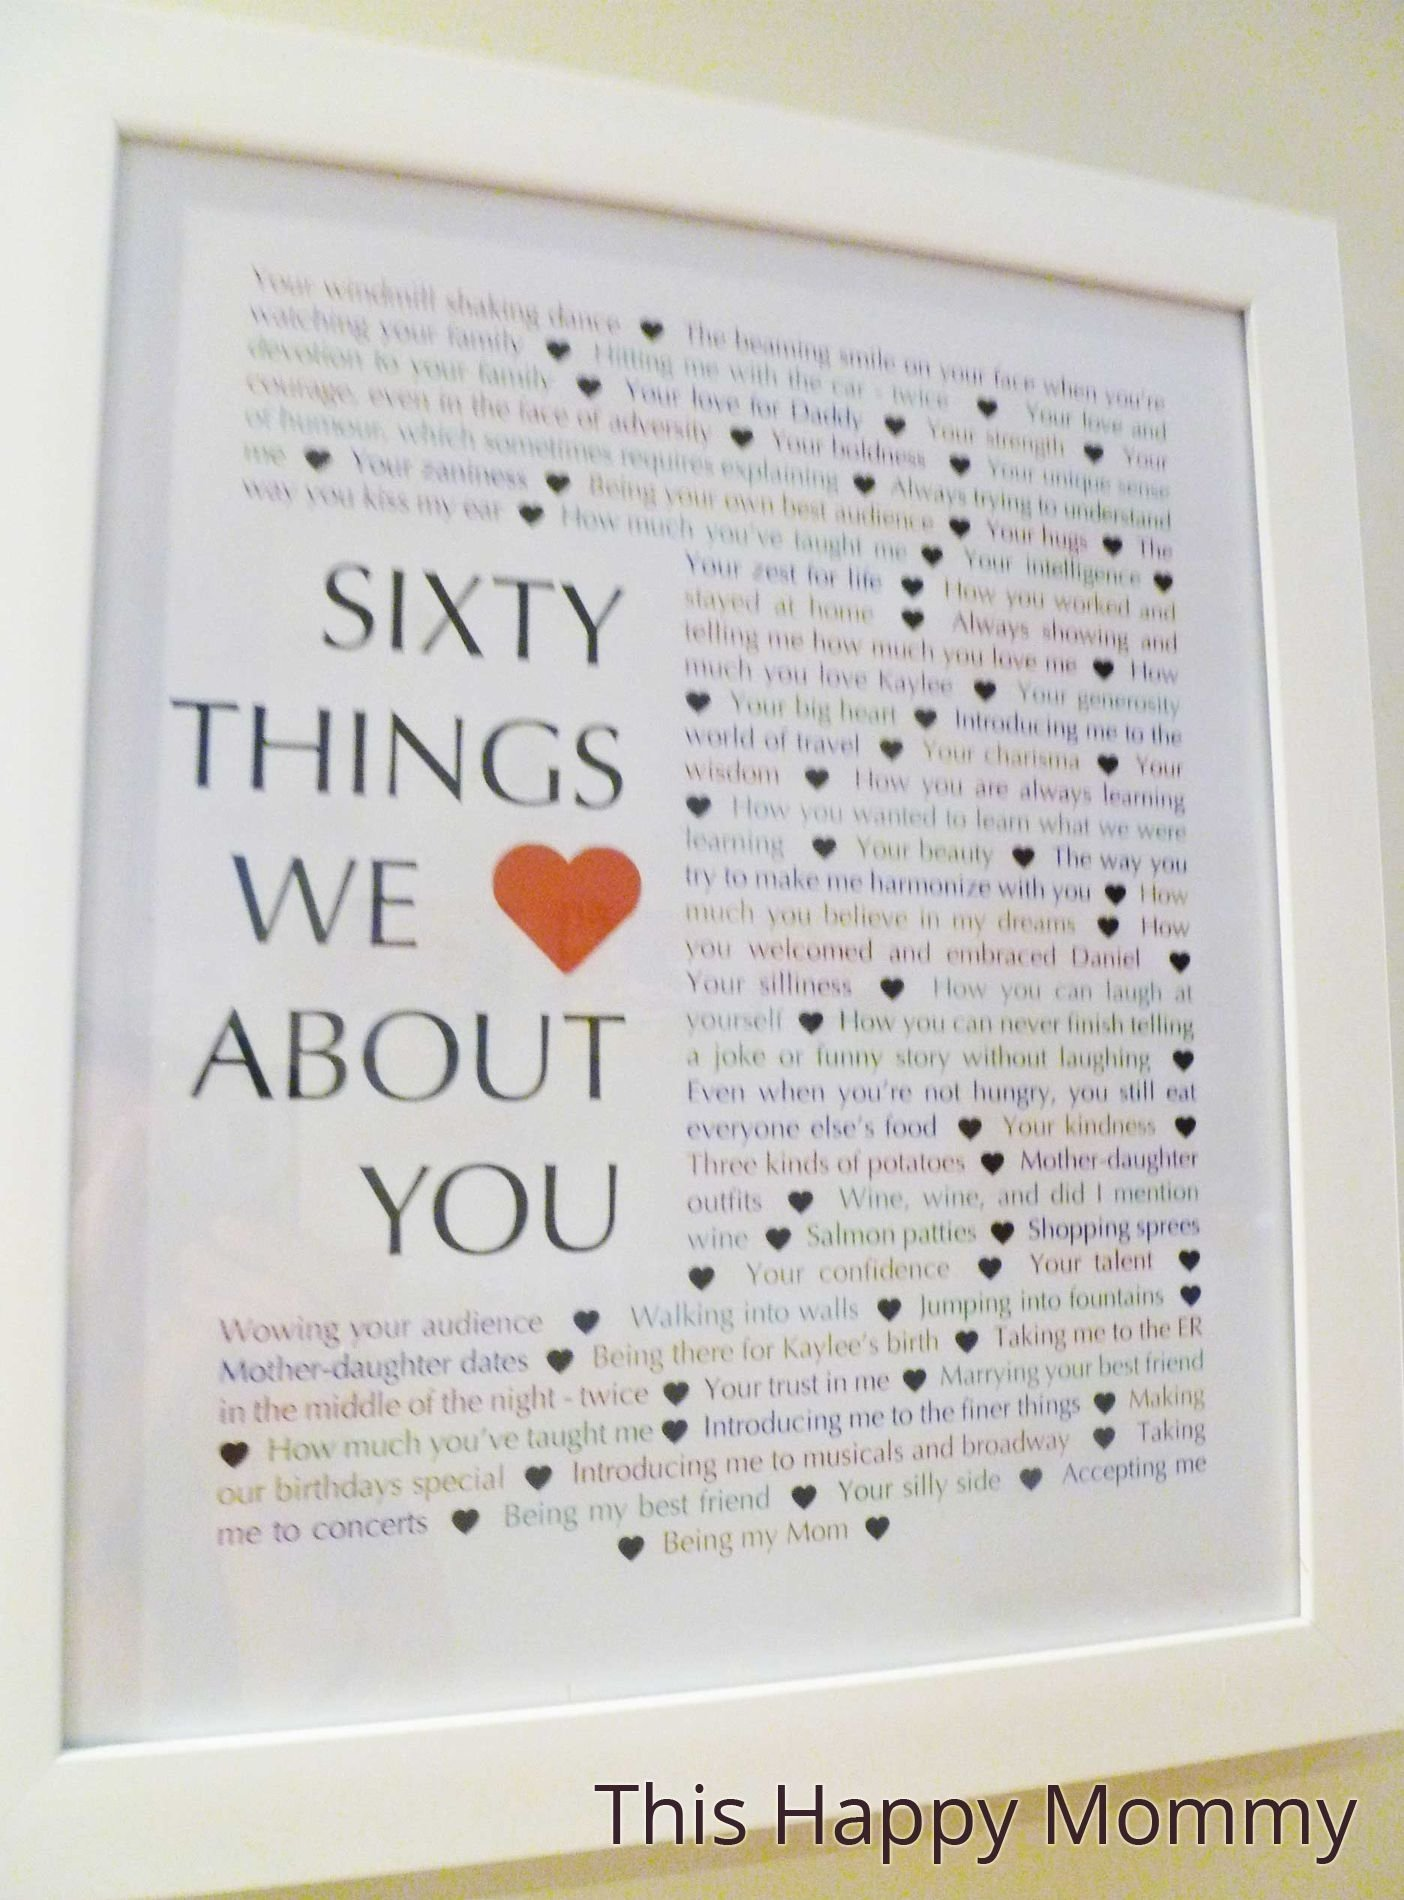 10 Wonderful Mom 60Th Birthday Gift Ideas 60 things we love about you milestone birthdays homemade and 10 2020